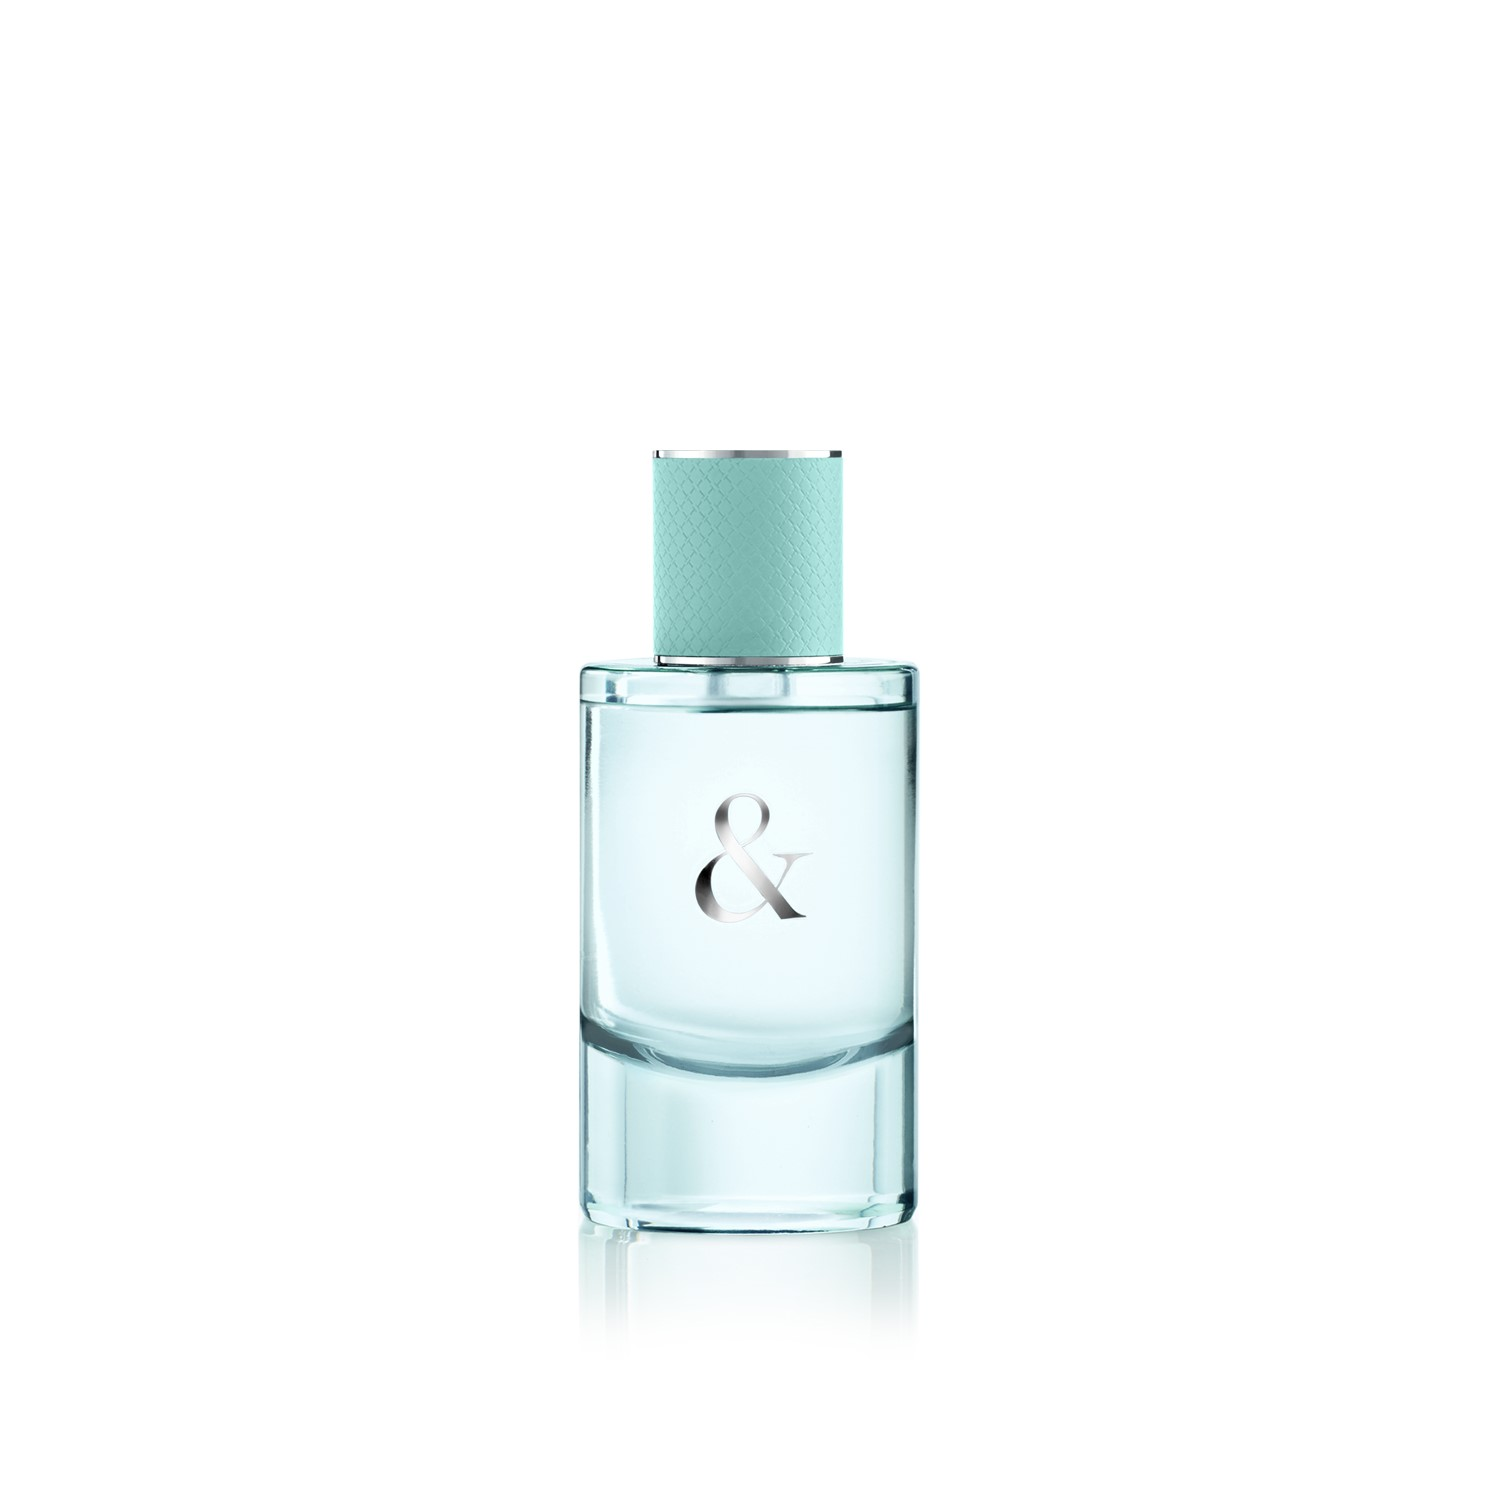 Eau de Parfum Tiffany & Love for Her 50 ml Tiffany & Co